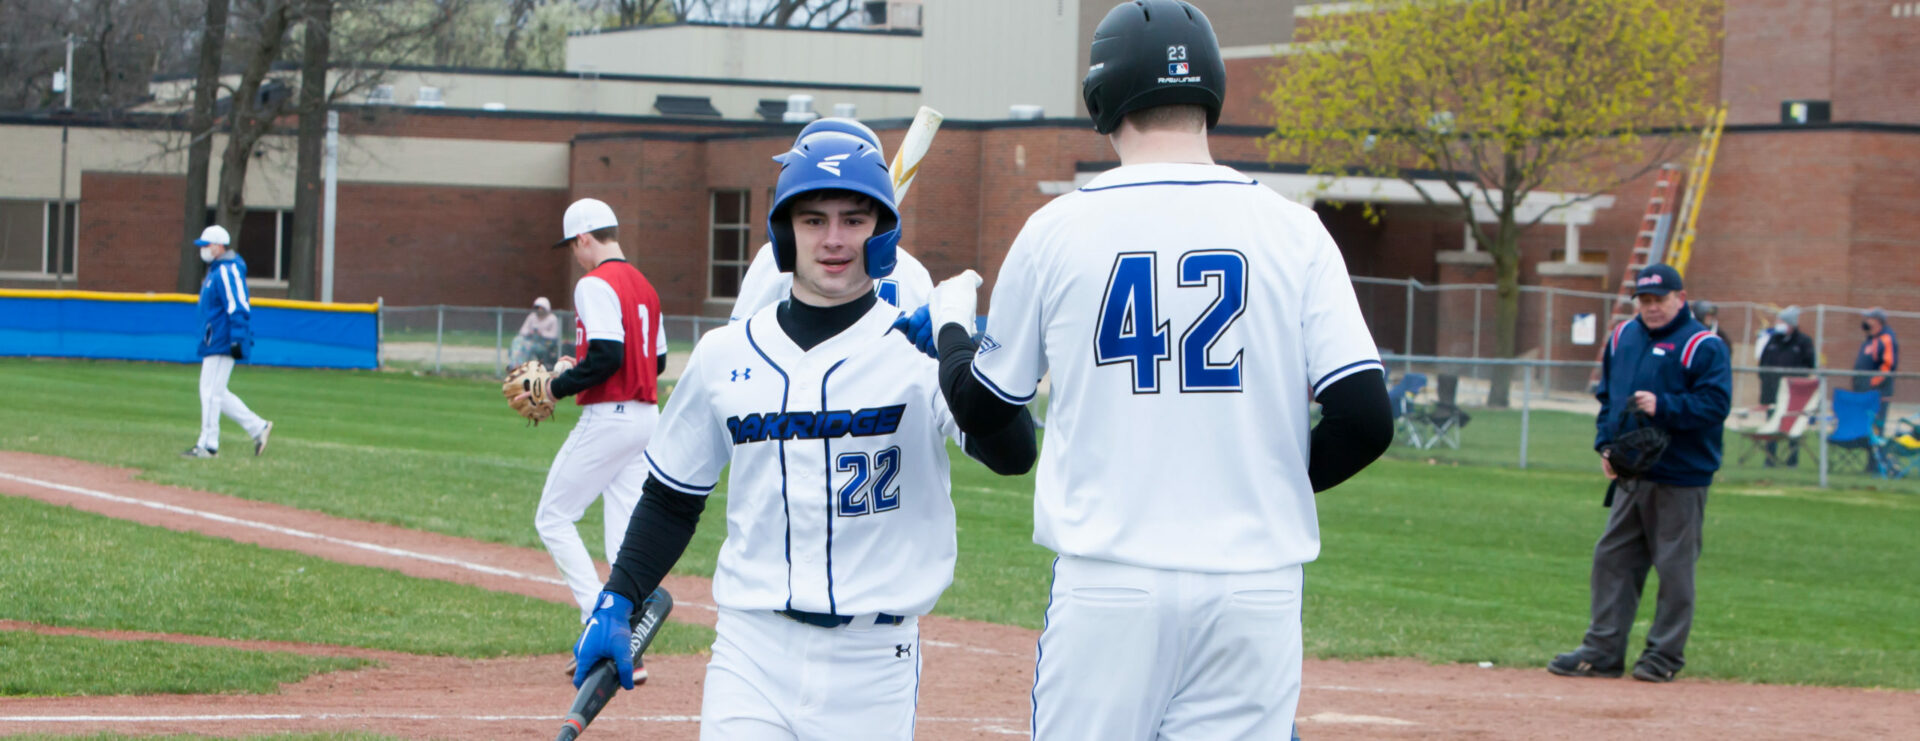 Oakridge baseball team sweeps Whitehall in a league doubleheader, still looks strong after missing the 2020 season